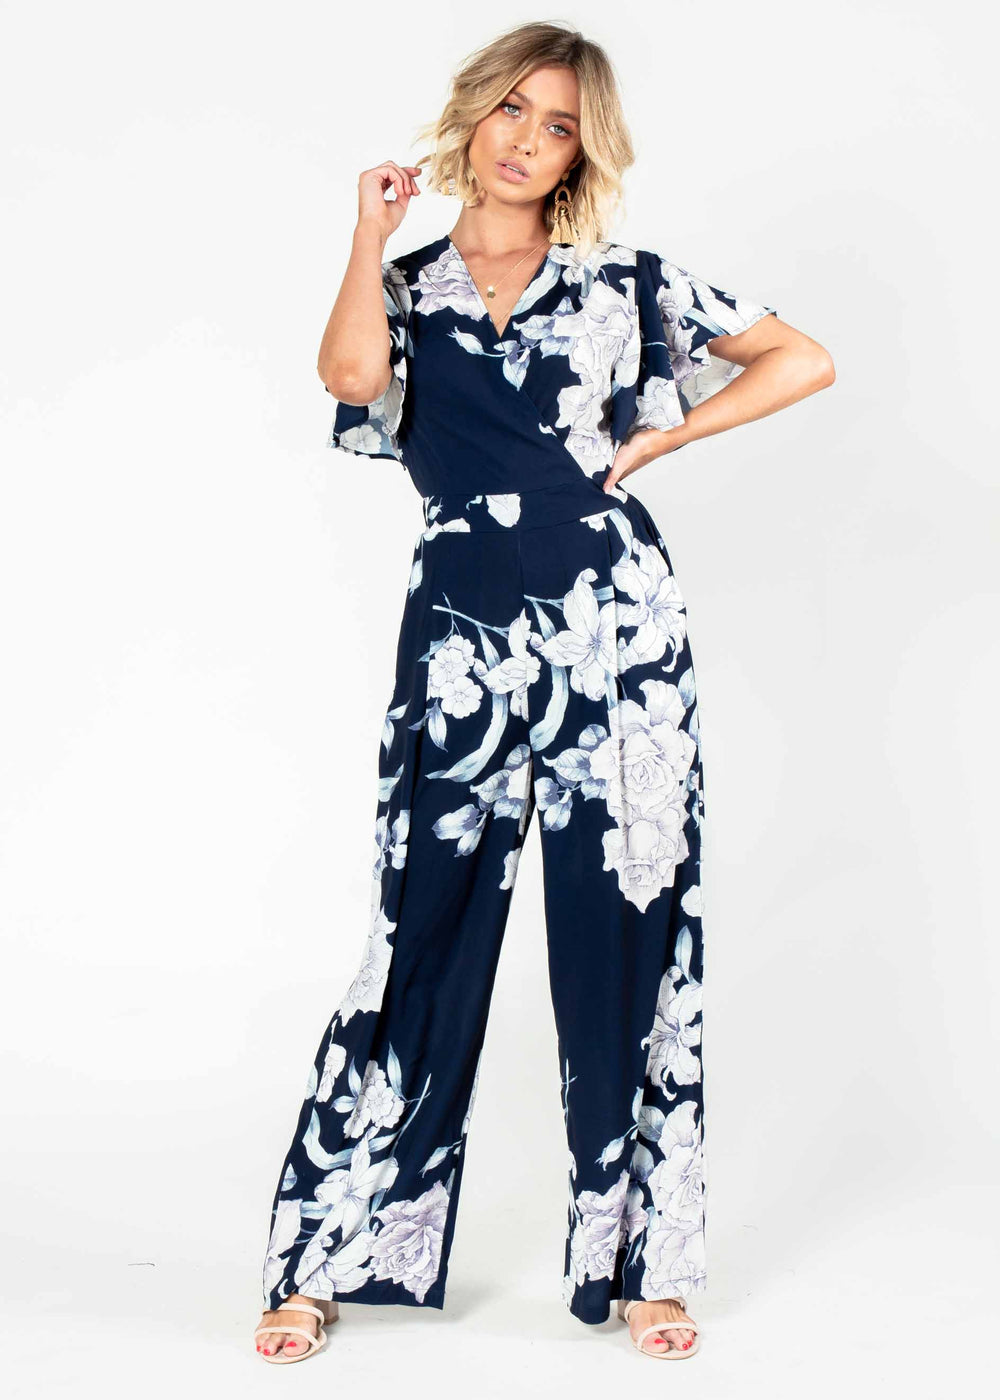 Lead The Way Pantsuit - Navy Floral